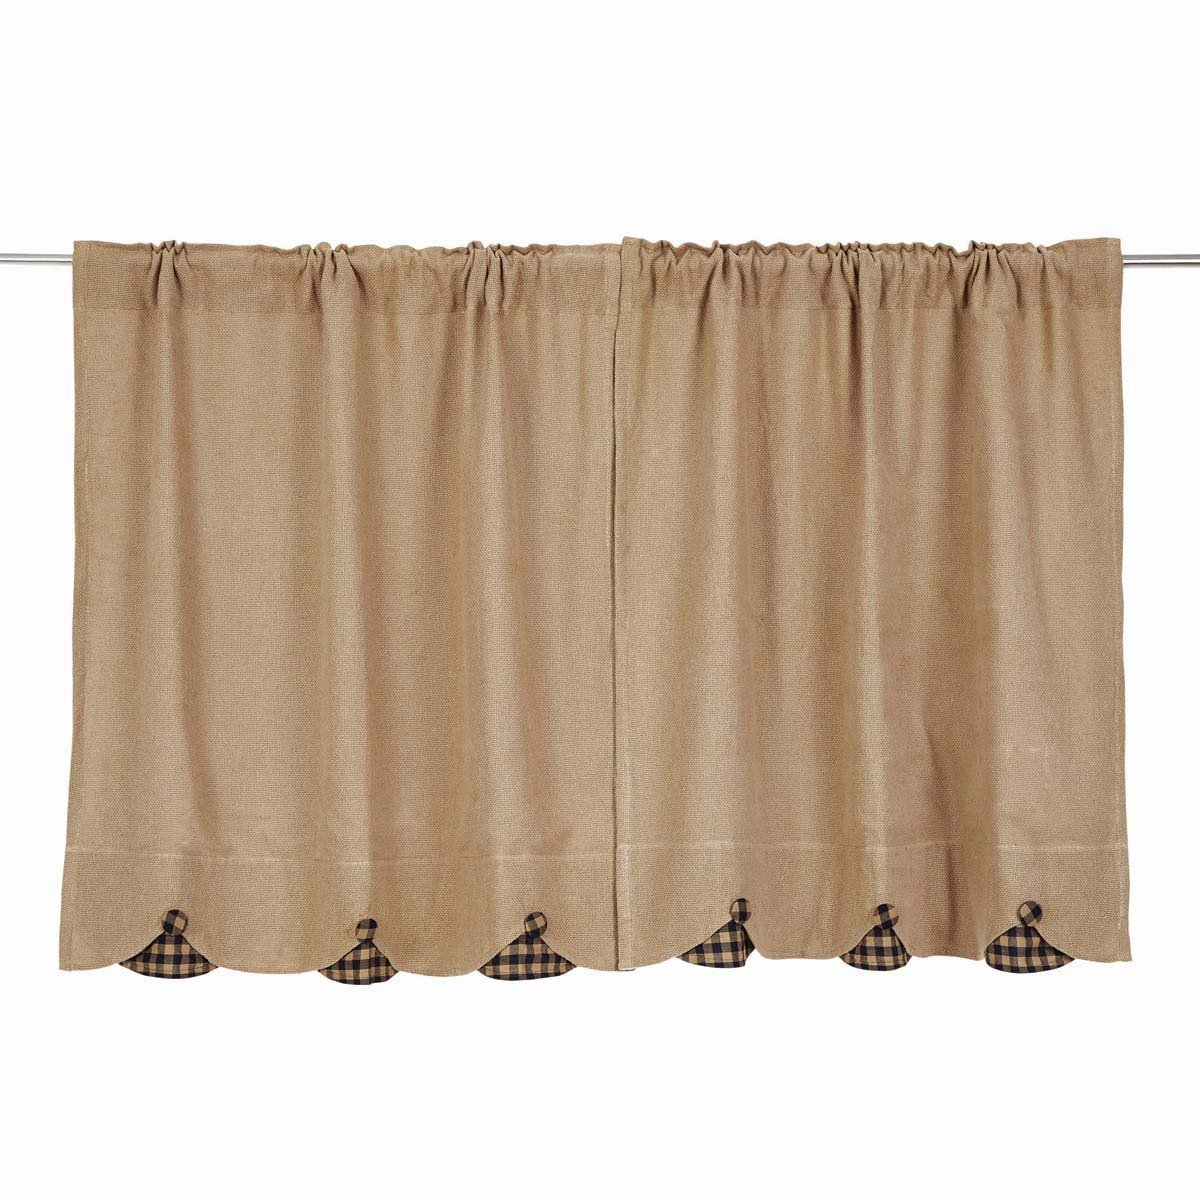 29604 VHC Brands Burlap with Black Check Scalloped Tier Set of 2 36x36